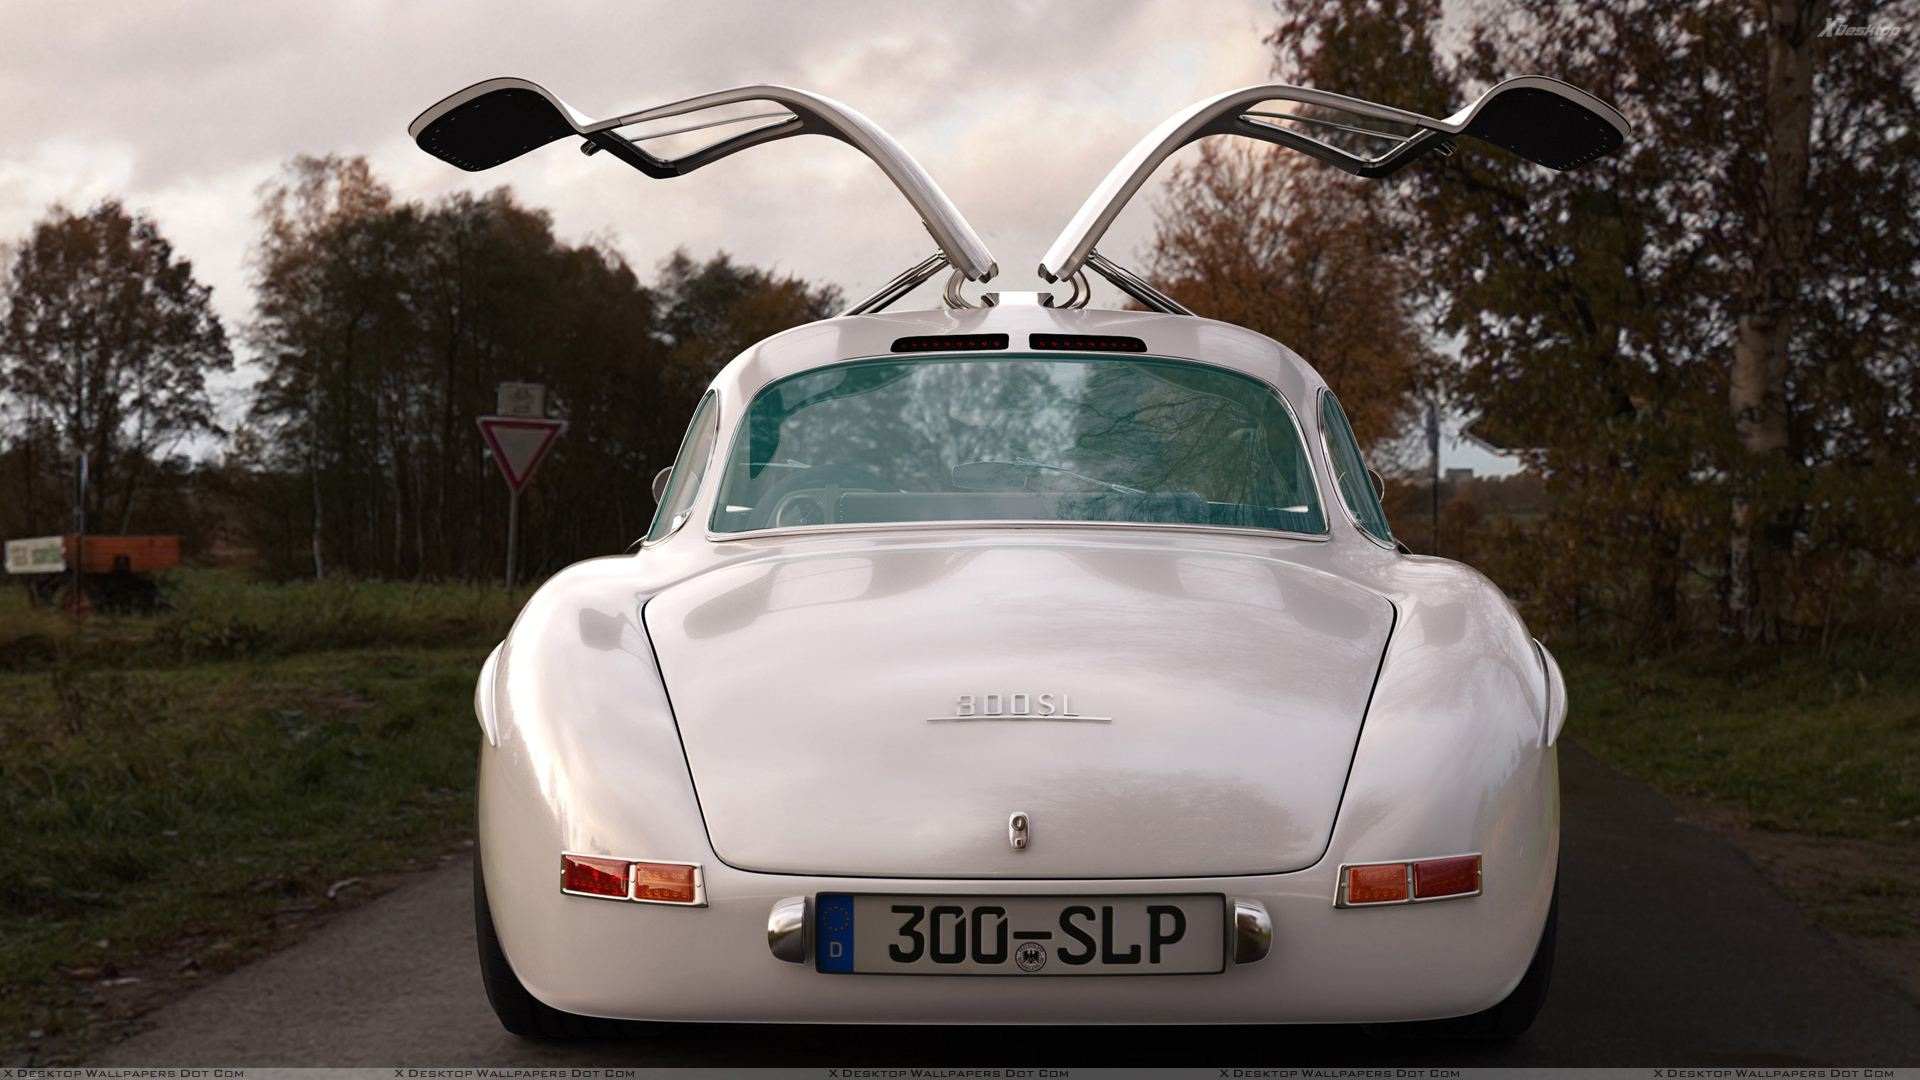 Back%20Pose%20Of%202009%20Mercedes-Benz%20300SL%20Gullwing%20Panamericana%20Replica.jpg